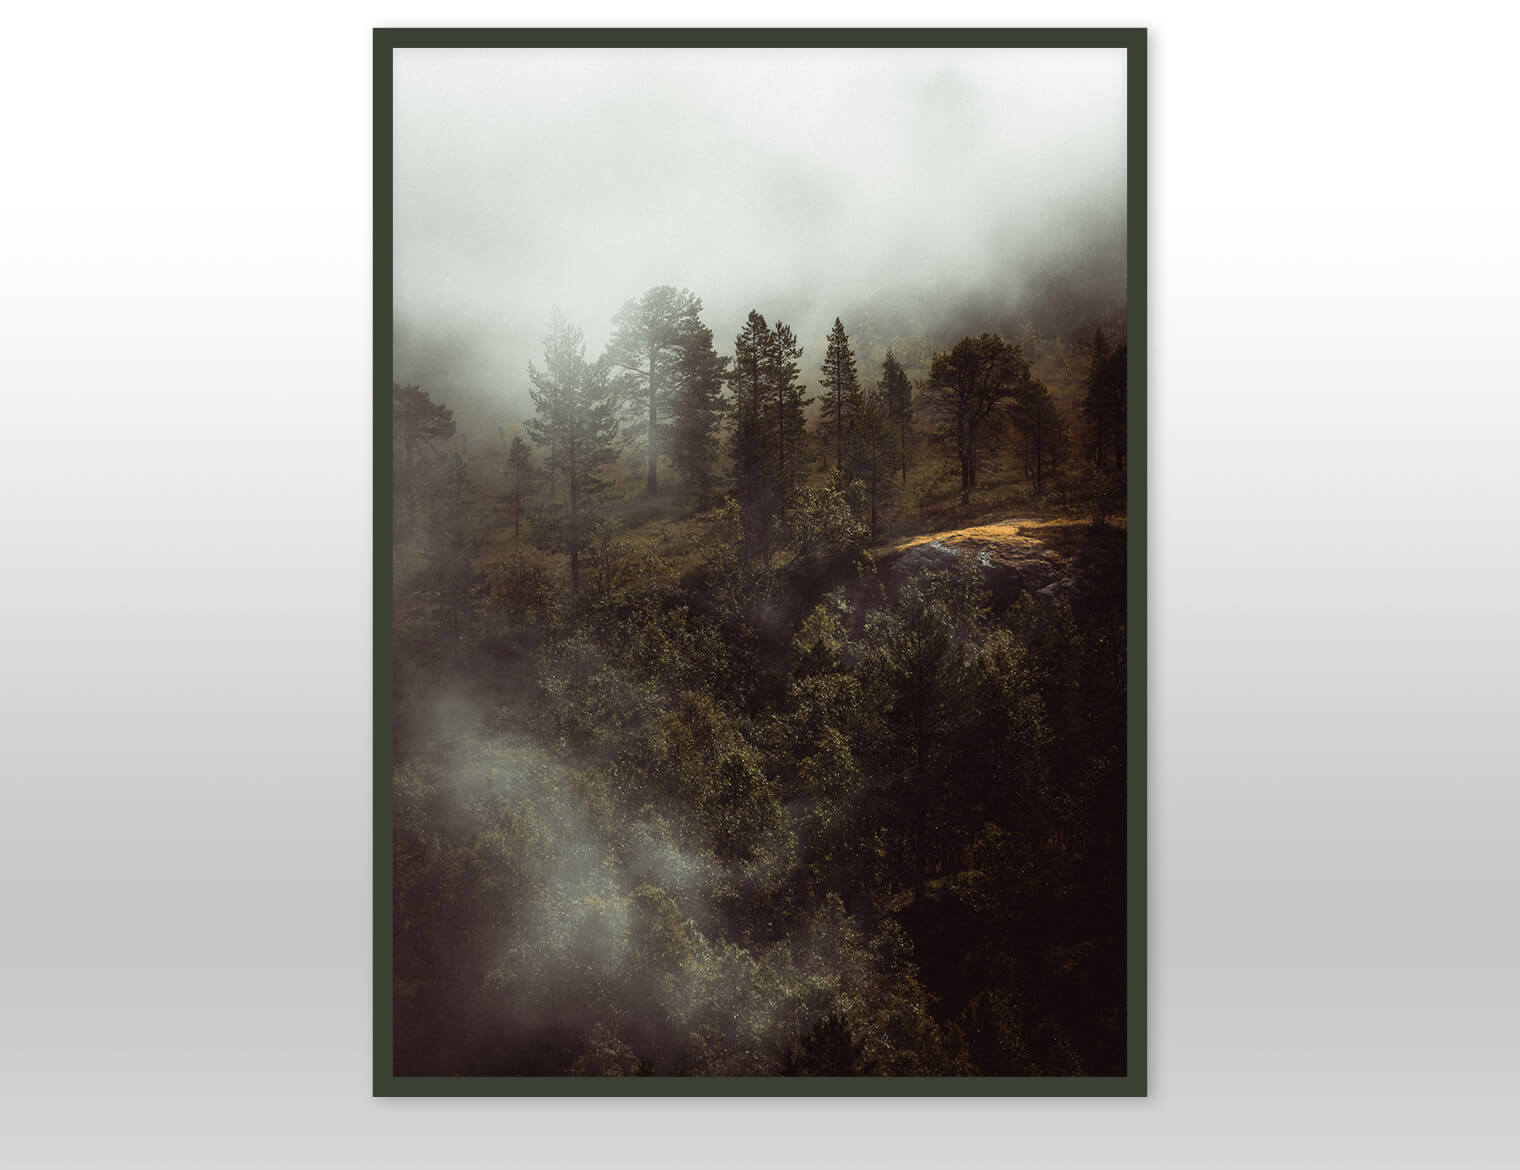 Fine Art Prints by Visual Artist and Photographer Jan Erik Waider